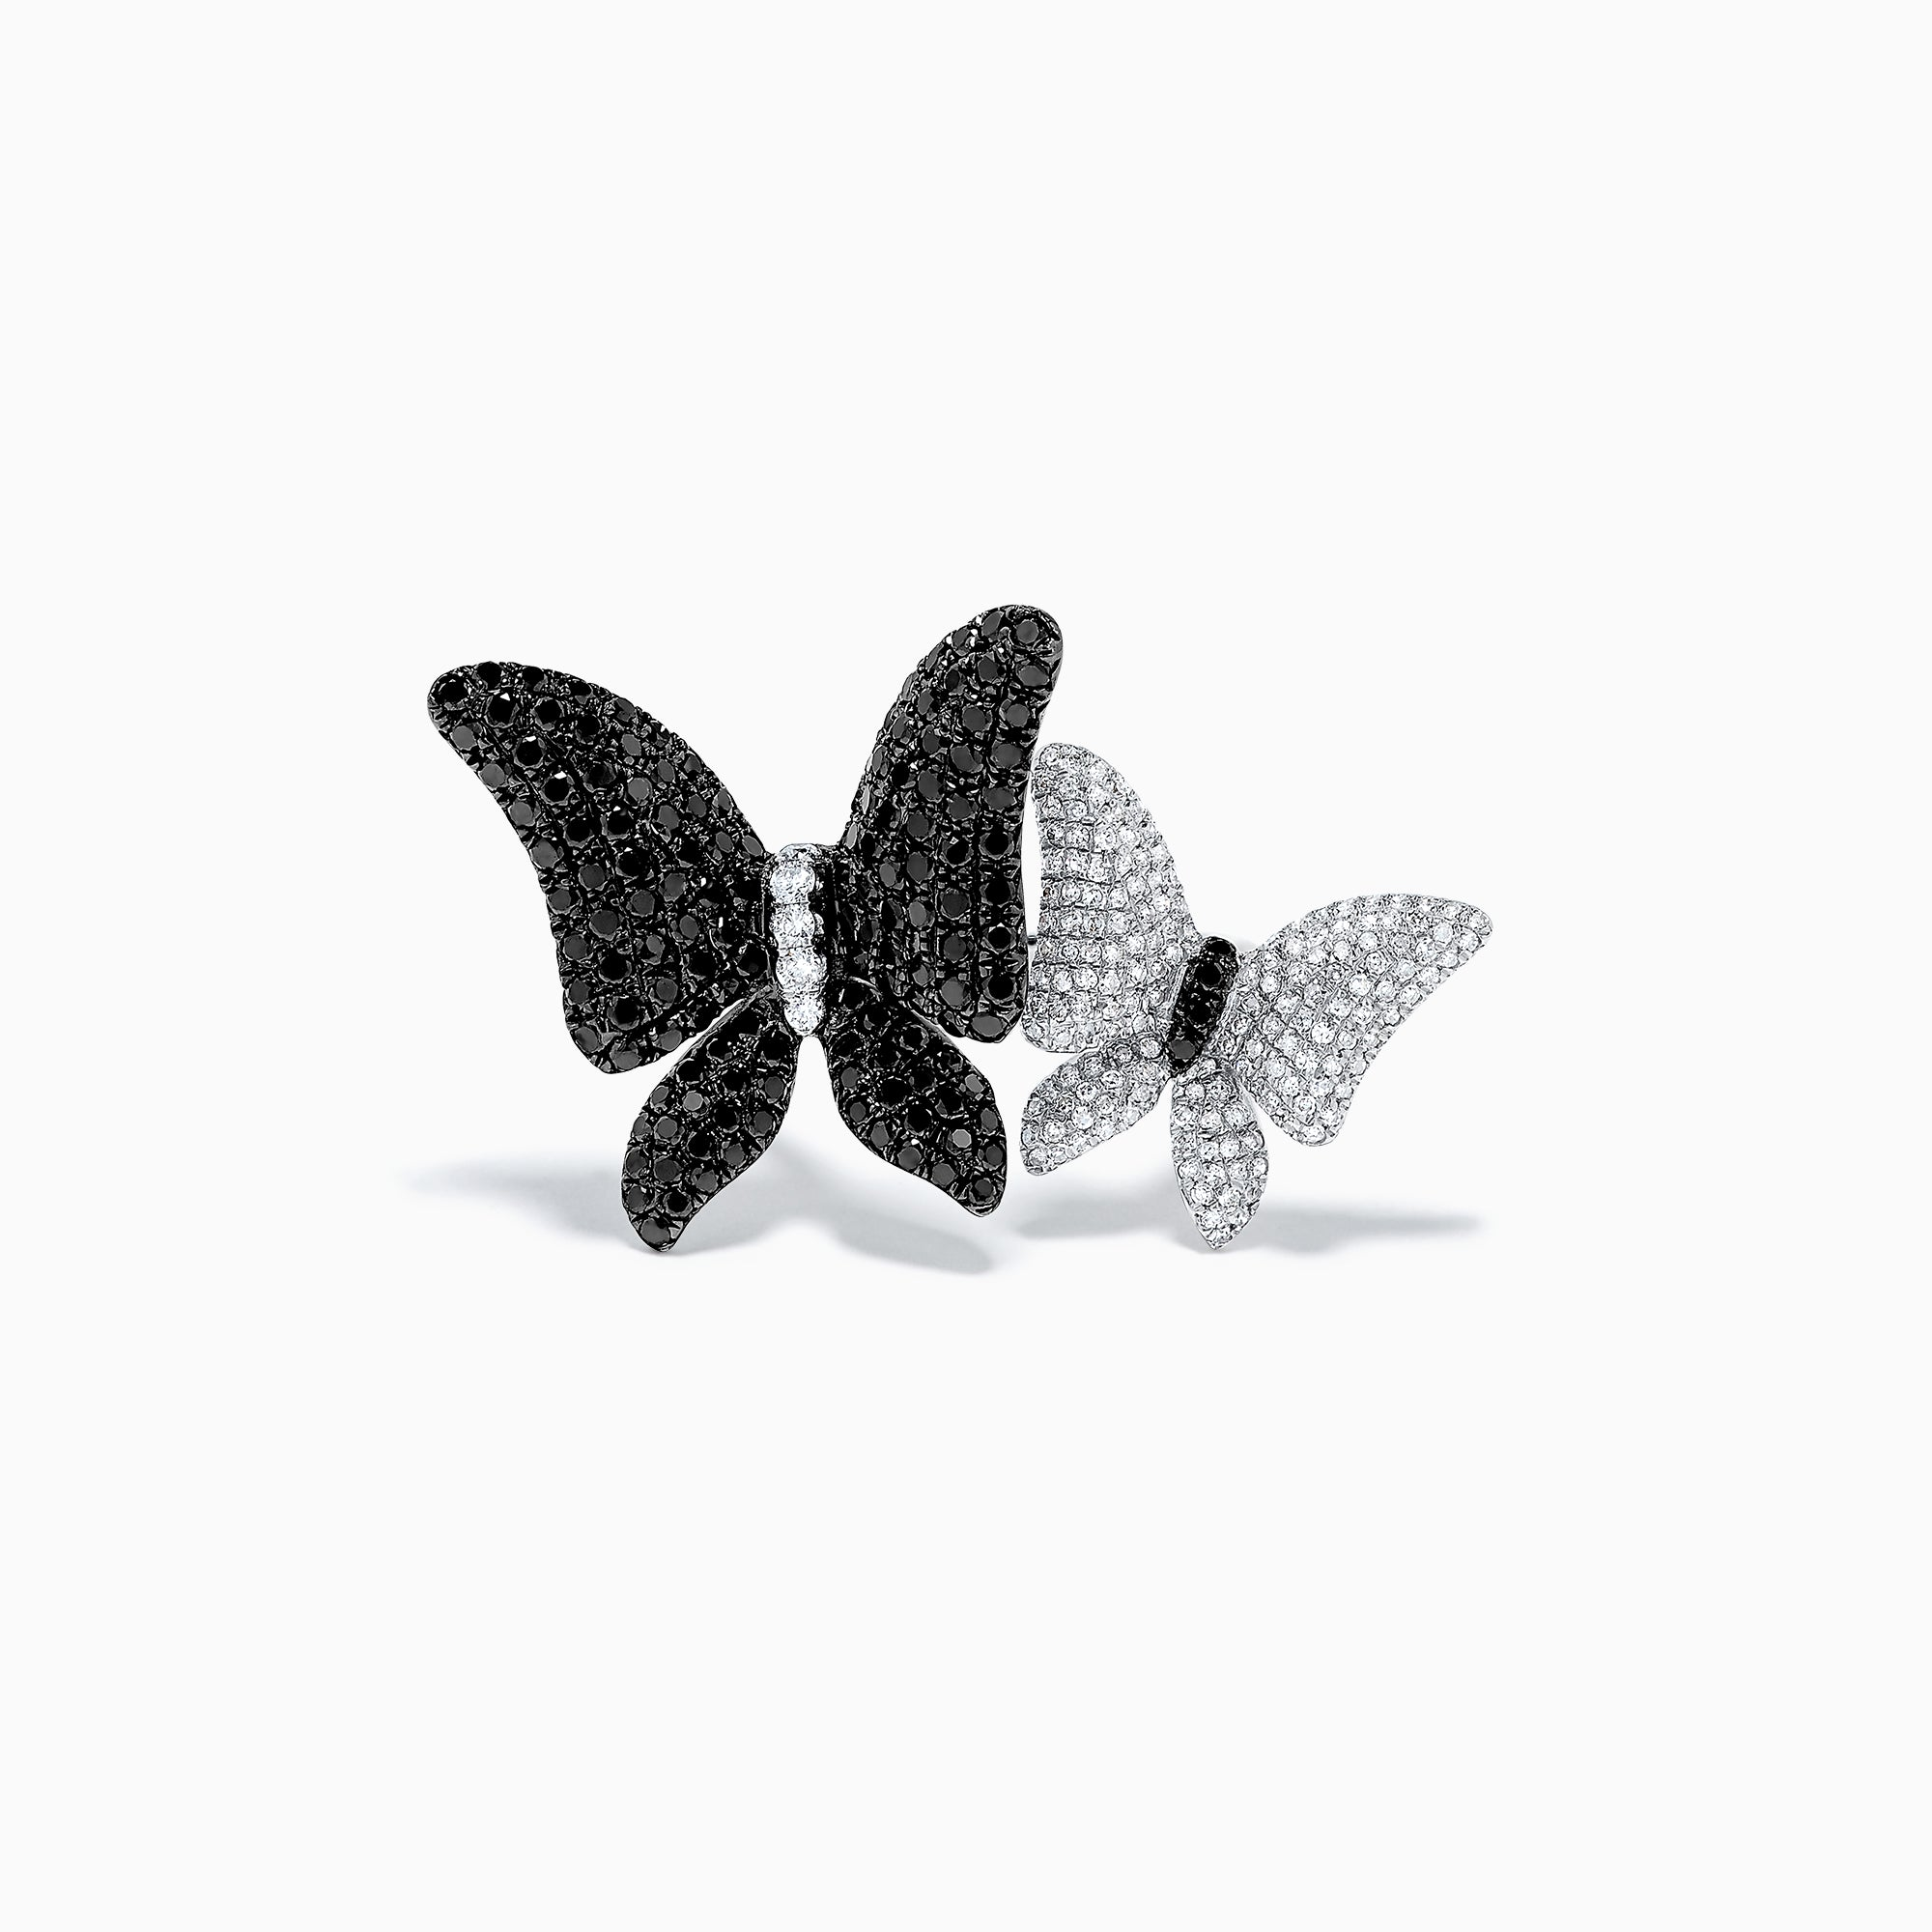 Effy Nature 14K White Gold Black and White Diamond Butterfly Ring, 2.23 TCW